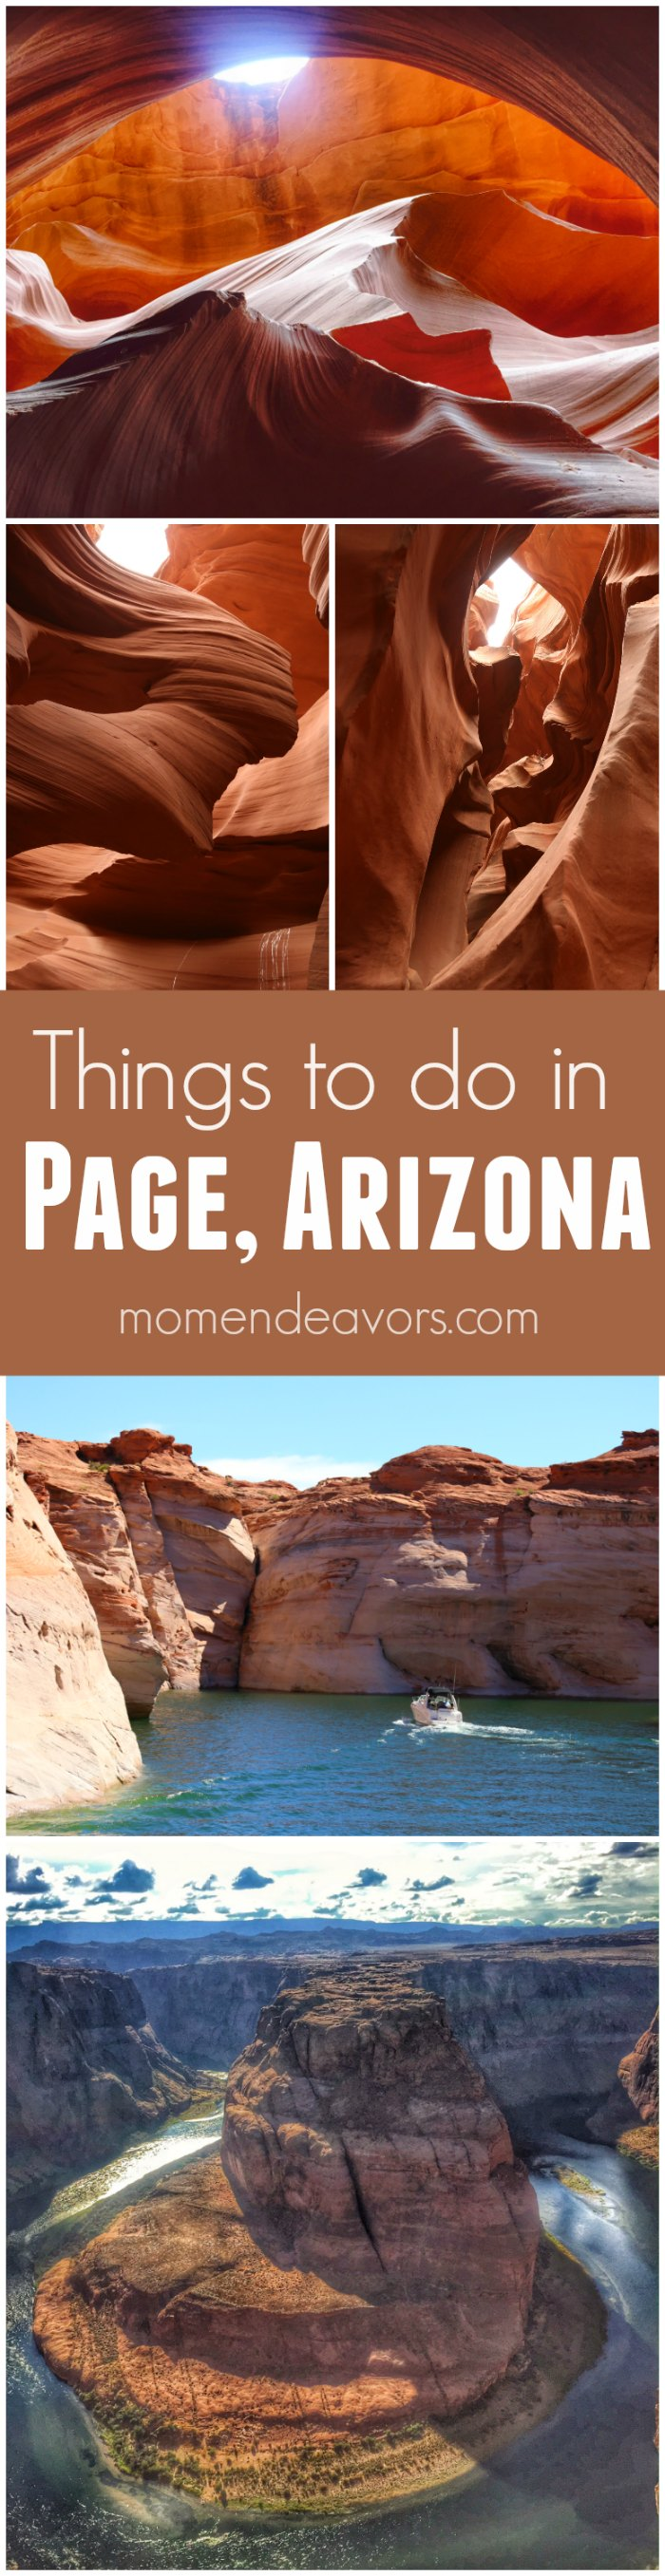 page-arizona-travel-tips